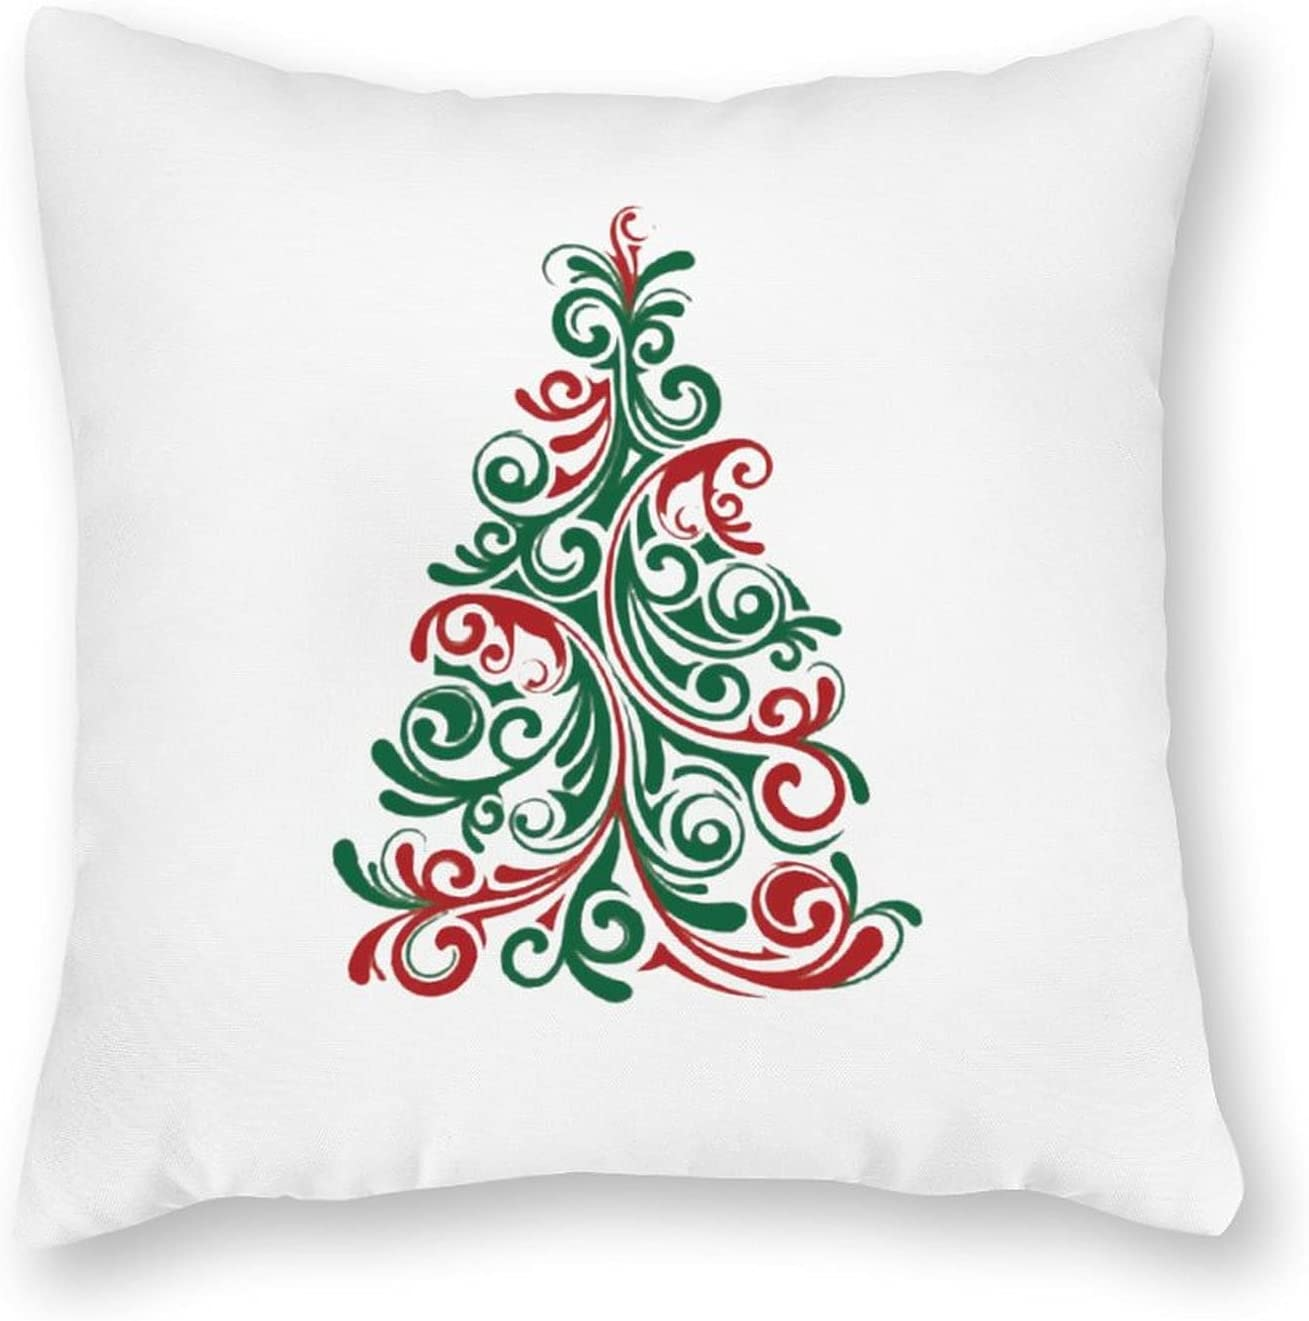 Canvas Pillow Case Whimsical Christmas Tree Pill New color Pillowcase Kids Clearance SALE! Limited time!